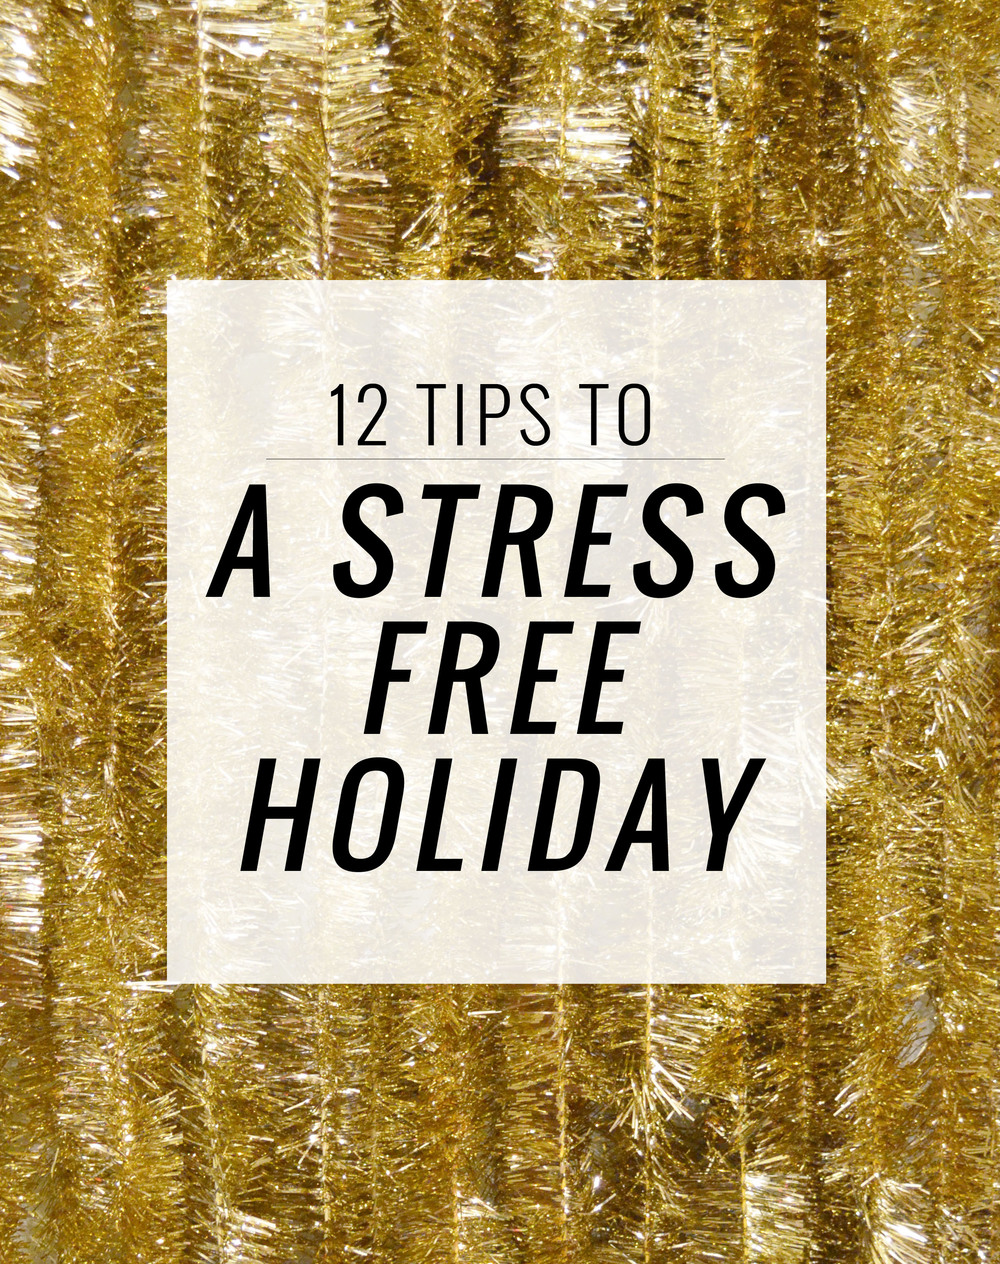 12 Simple Tips To A Stress Free Holiday For the Busy Mom | Momma Society-The Community of Modern Moms | www.MommaSociety.com